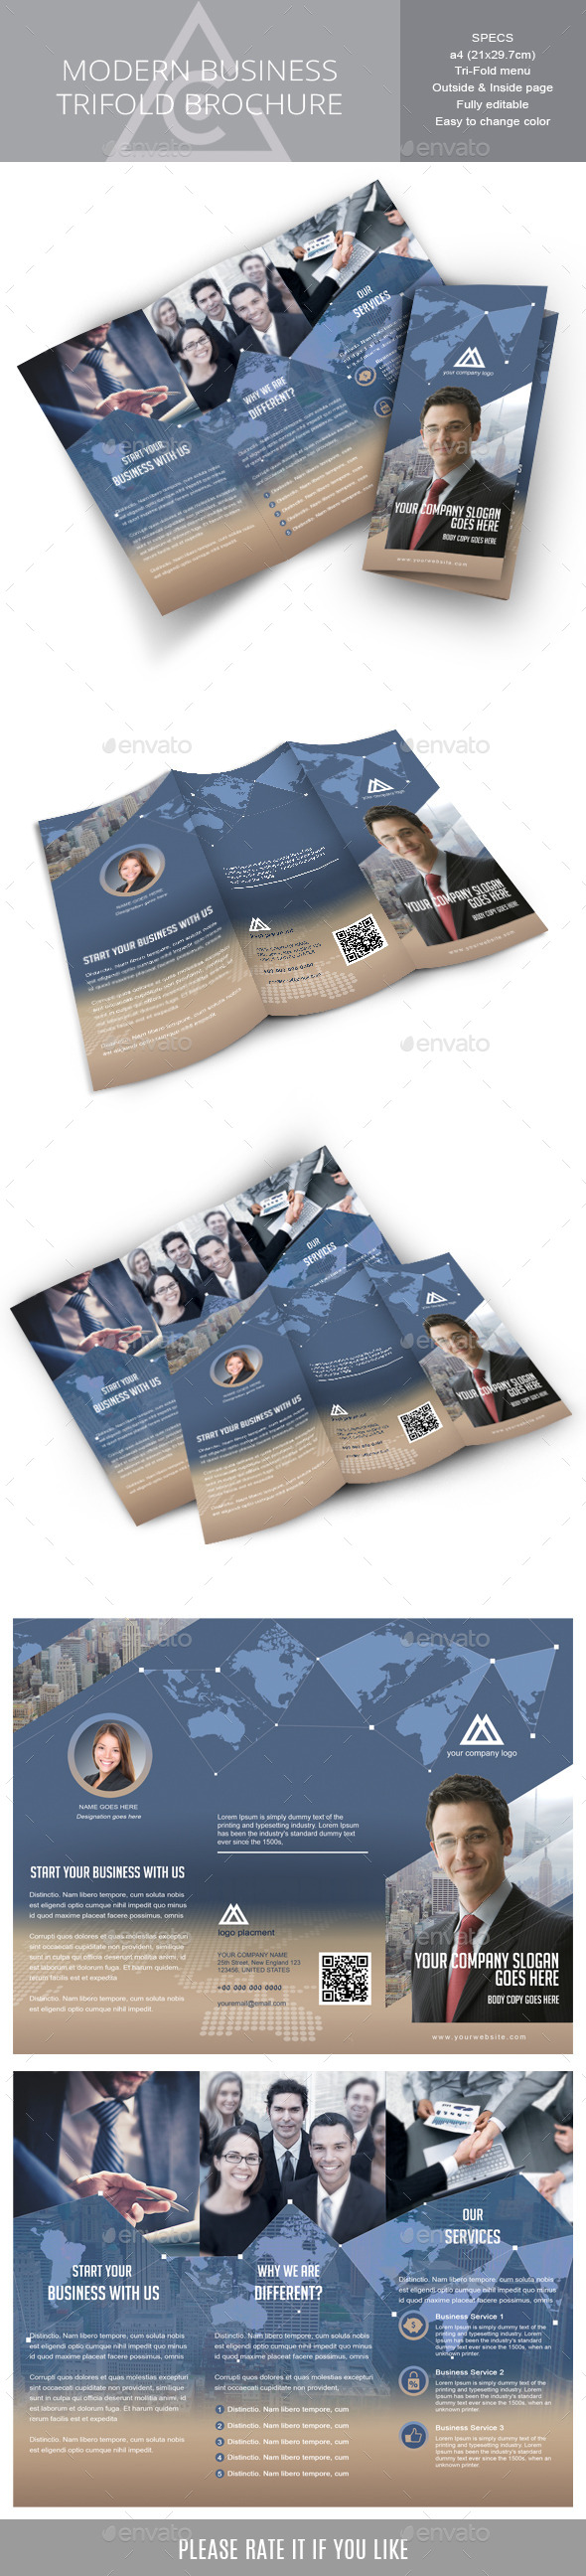 GraphicRiver Tri-fold brochure for Corporate Business 8990916